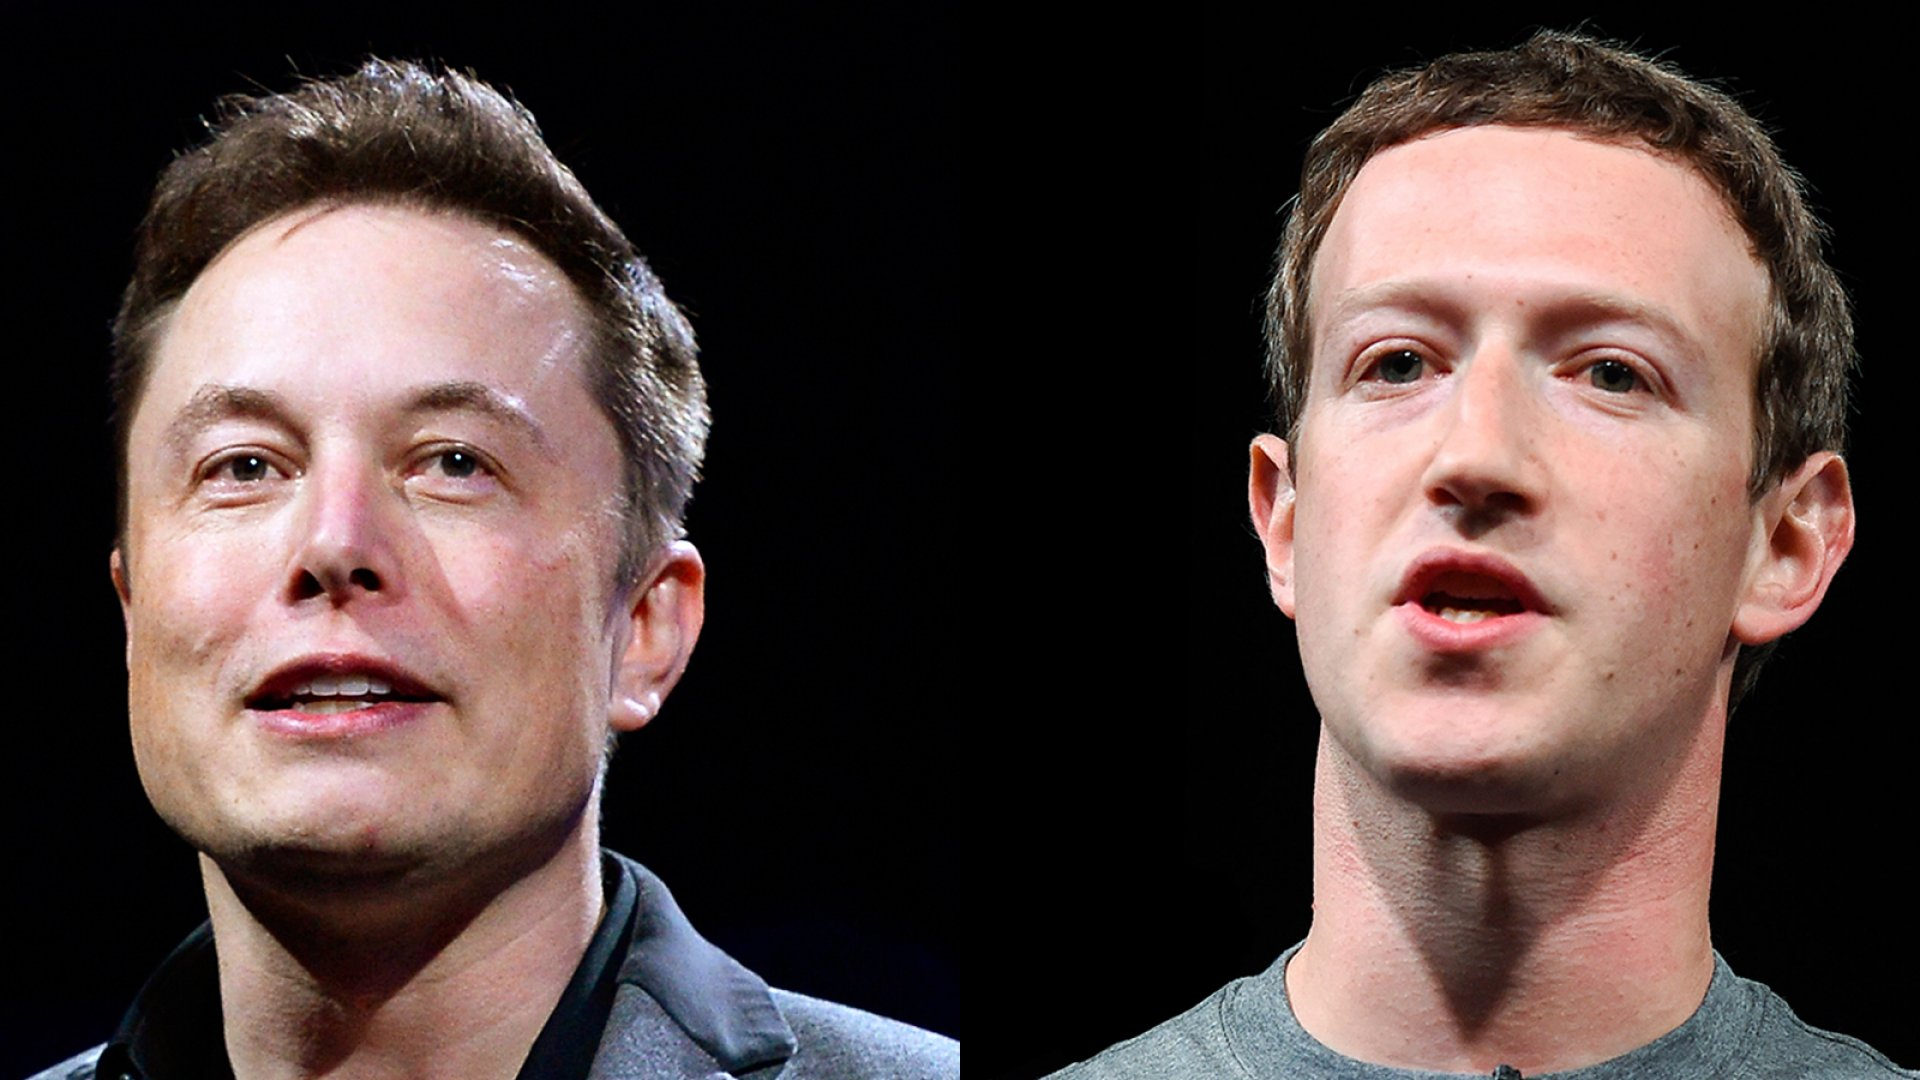 Elon Musk and Mark Zuckerberg Are Officially in a War of Words Over Artificial Intelligence